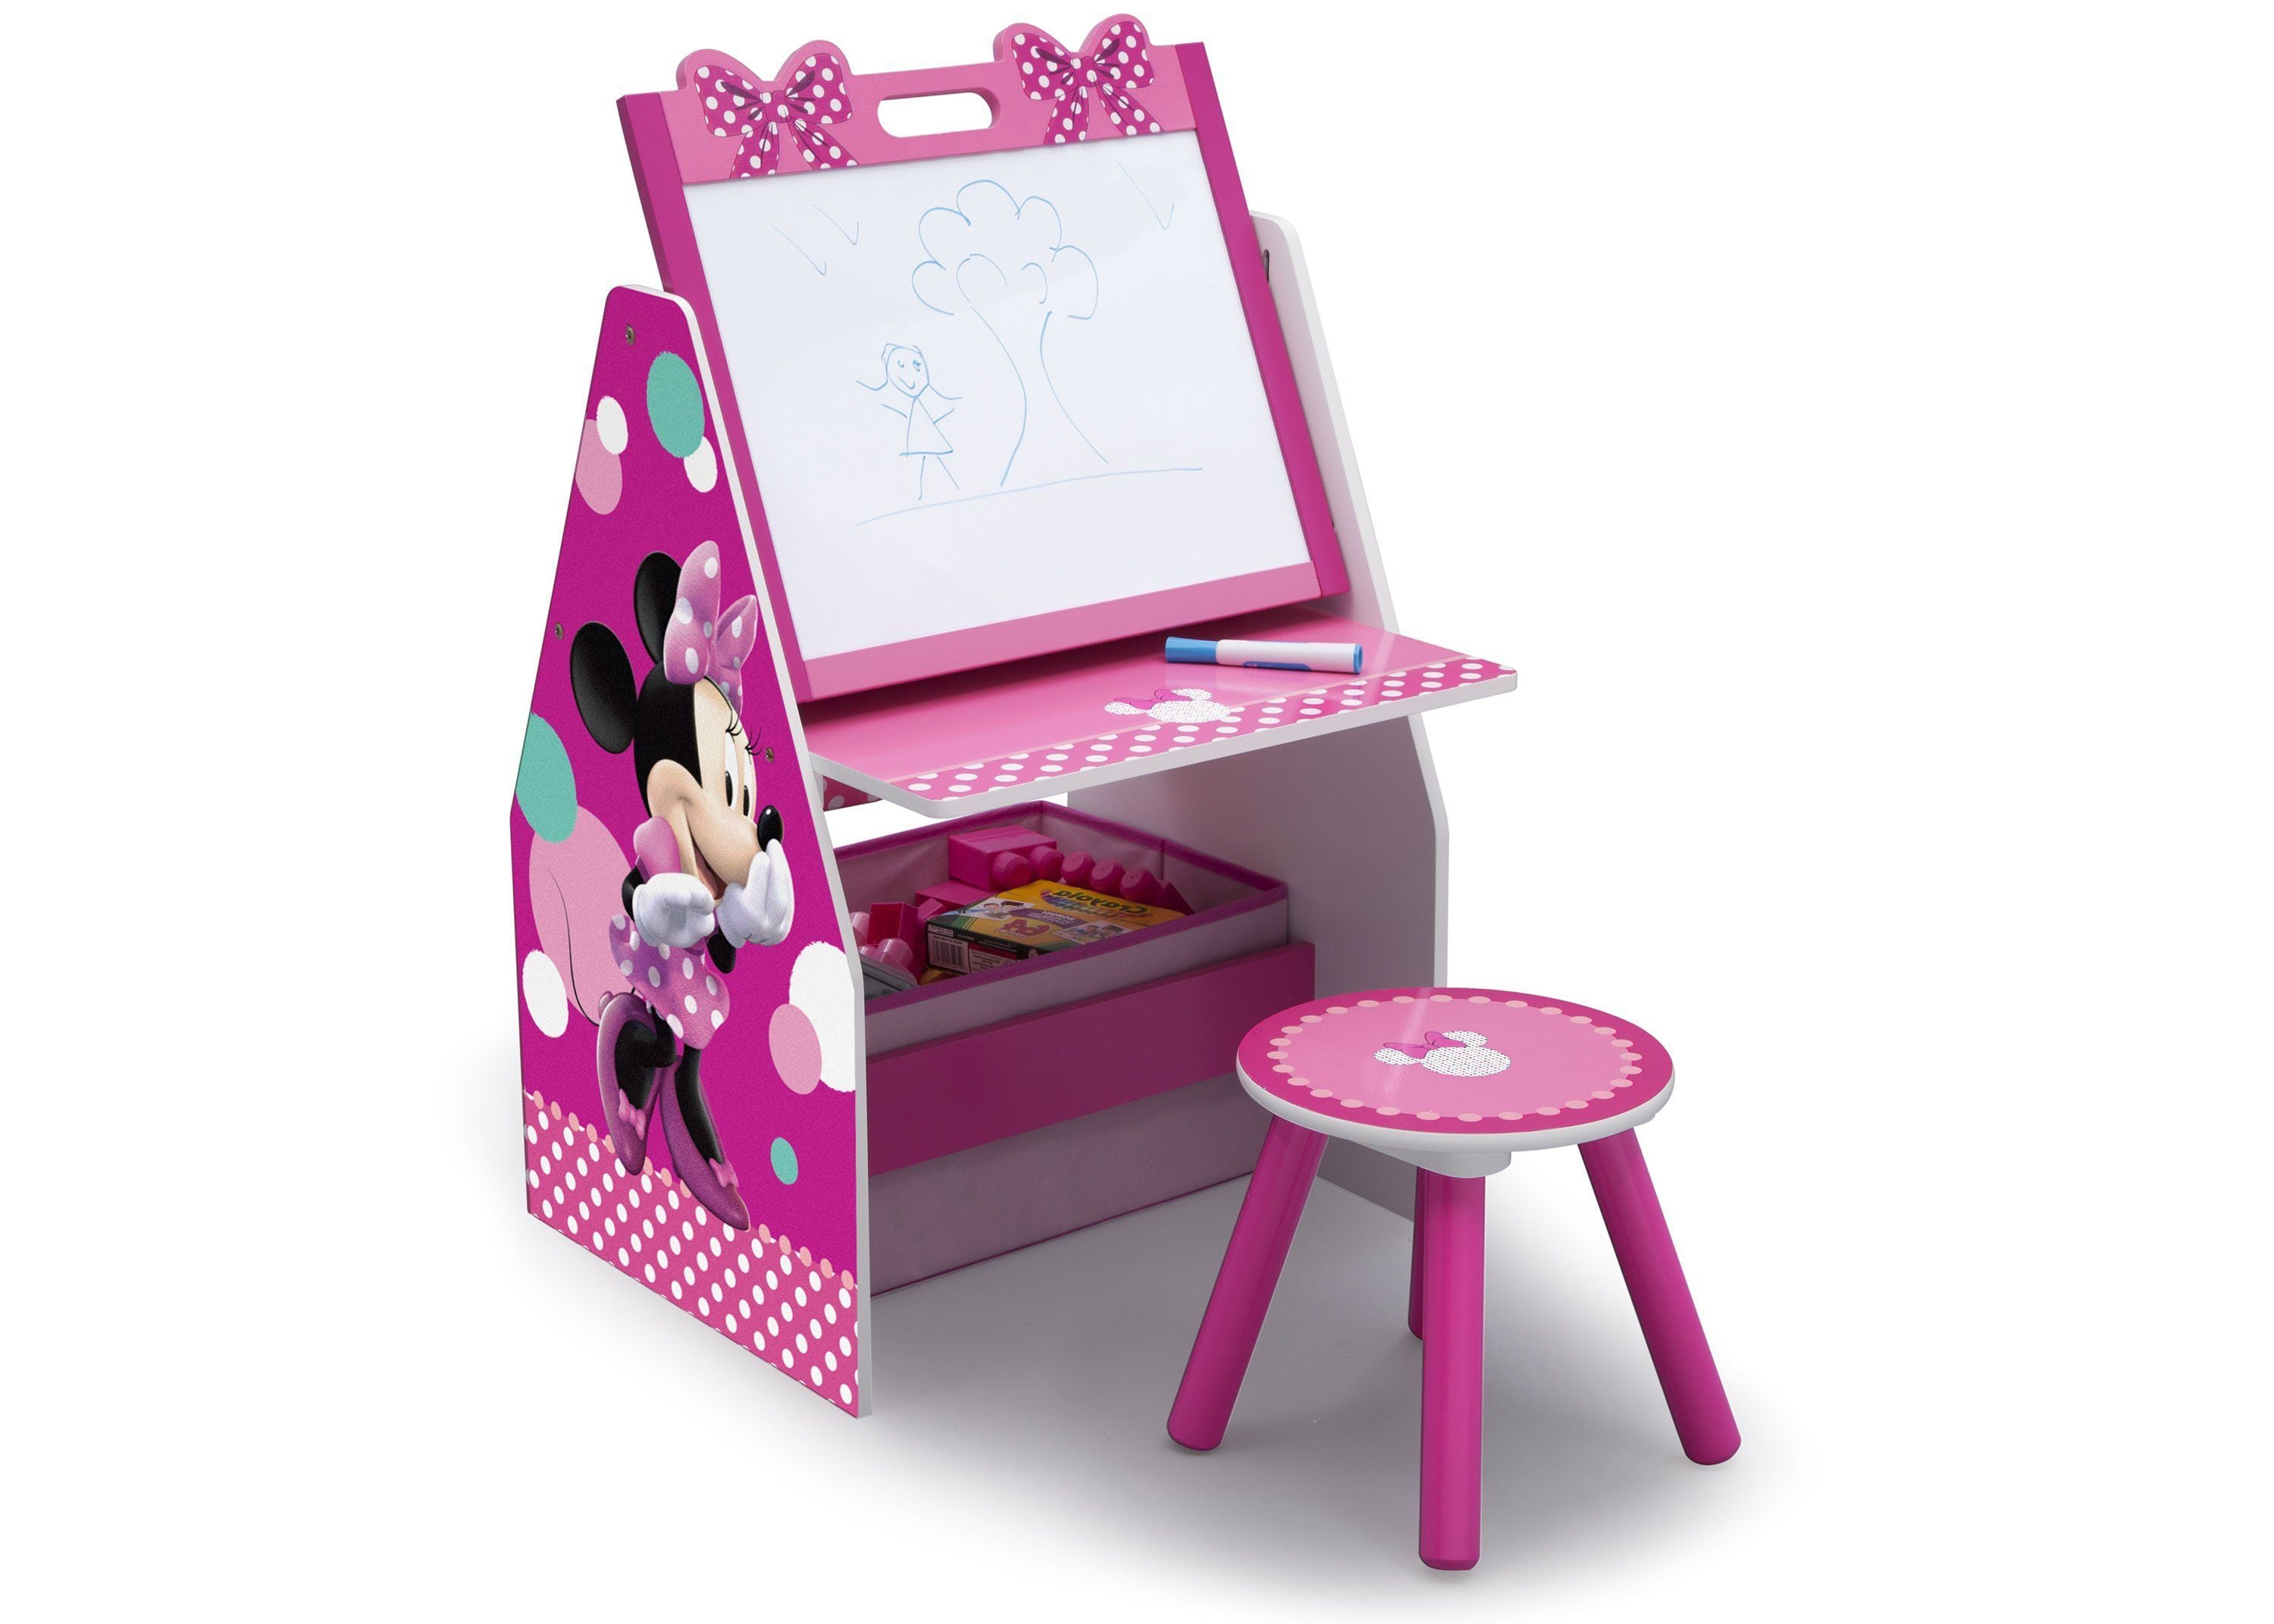 minnie mouse deluxe kids art table easel desk stool toy